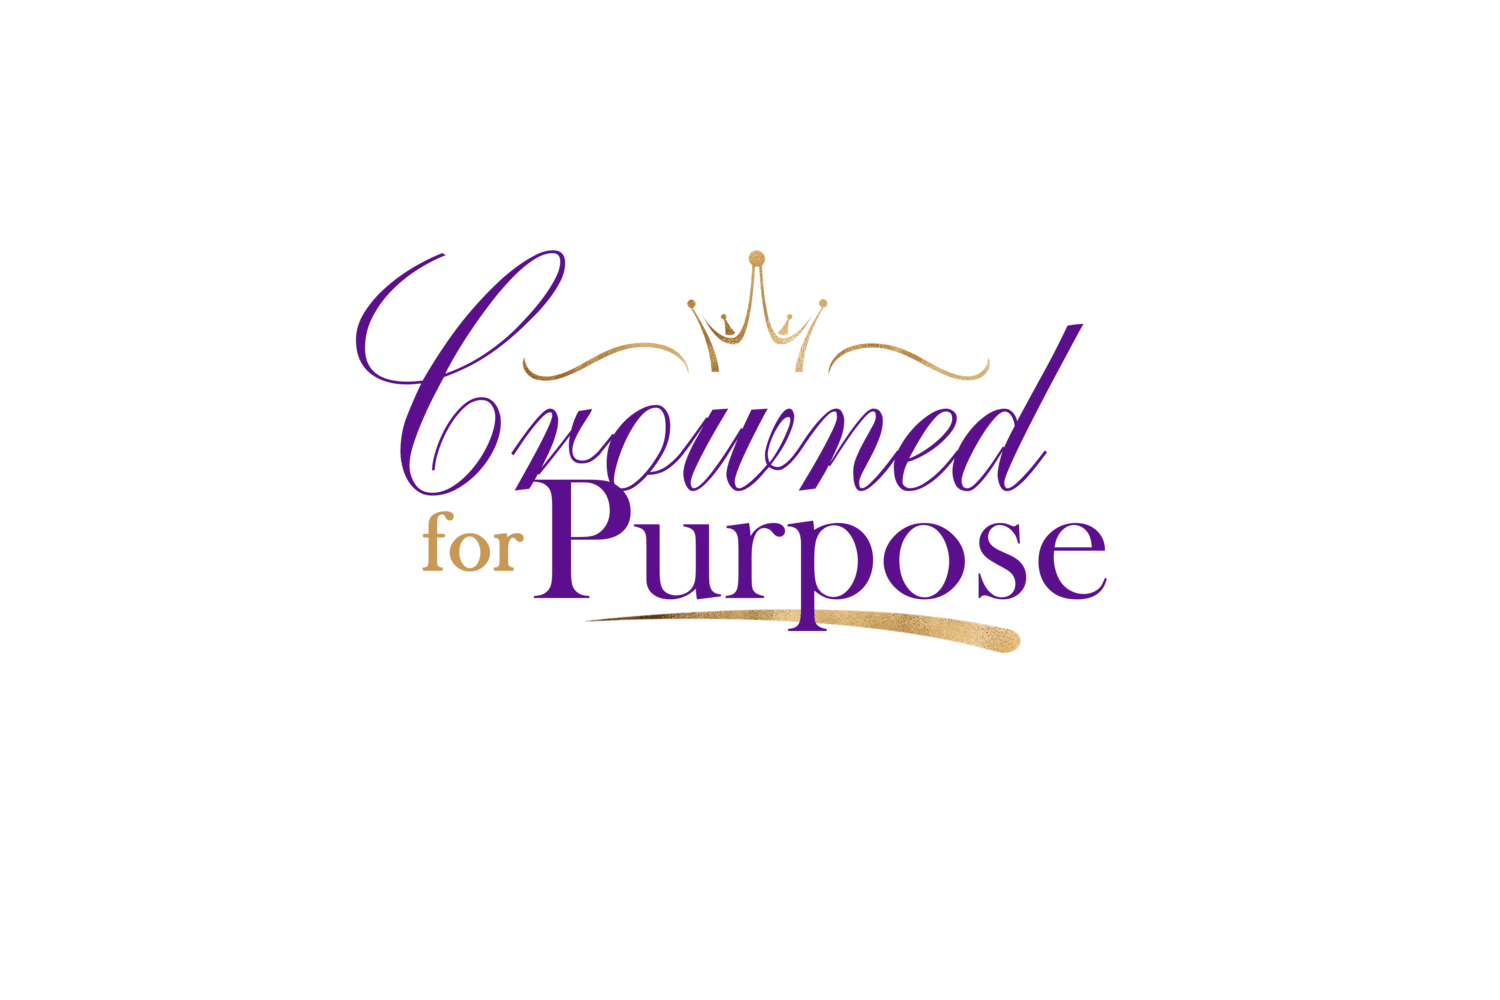 Crowned for Purpose